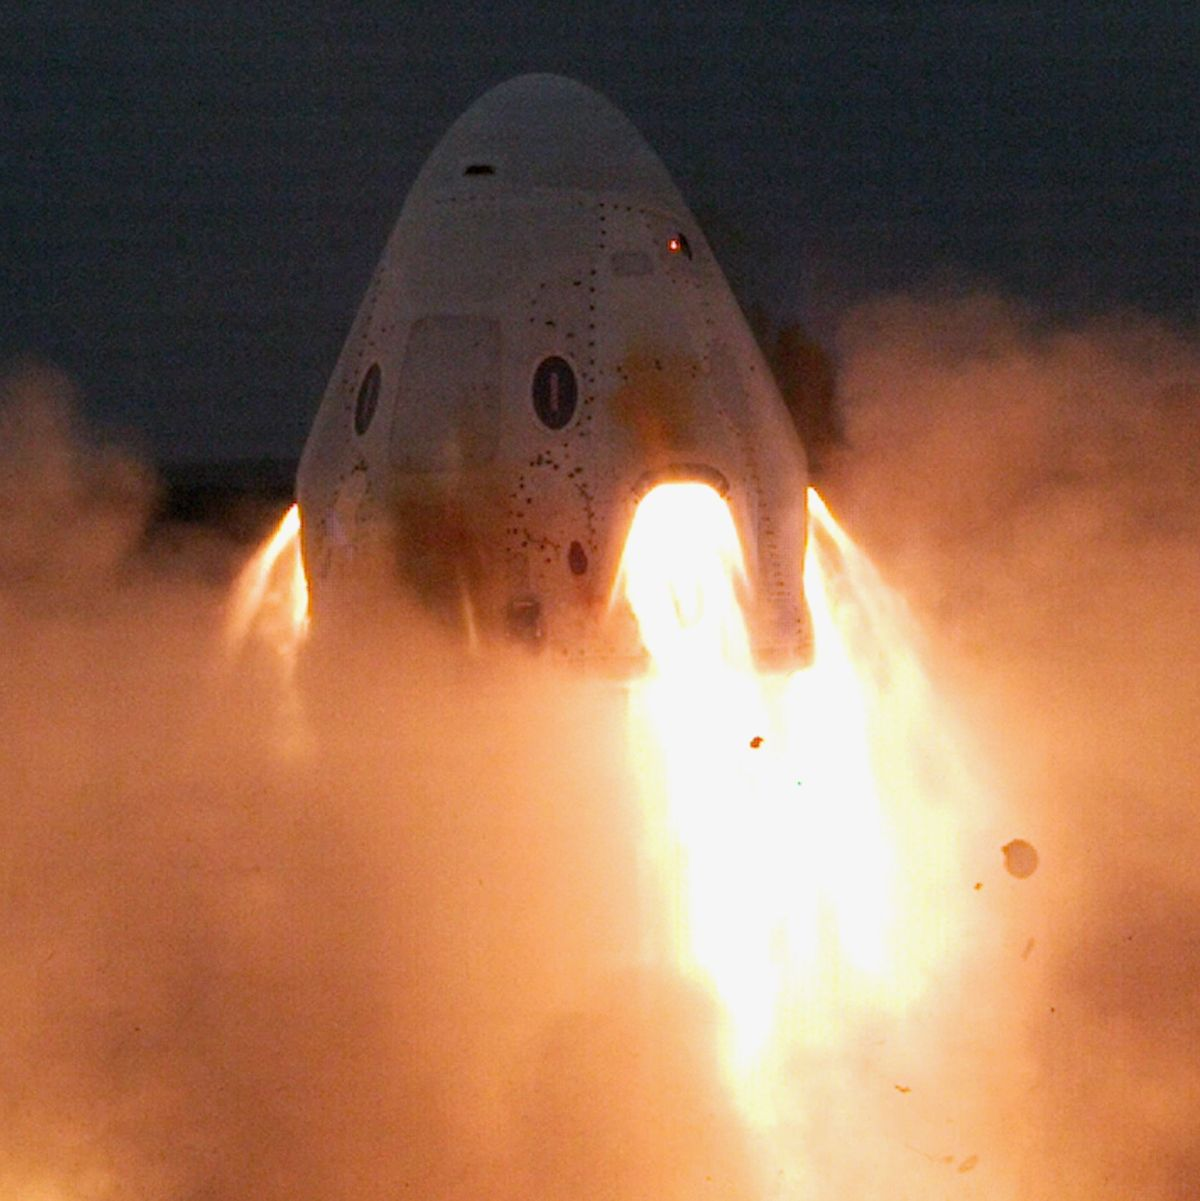 SpaceX's Crew Dragon Abort System Aces Ground Test Ahead of Major Launch